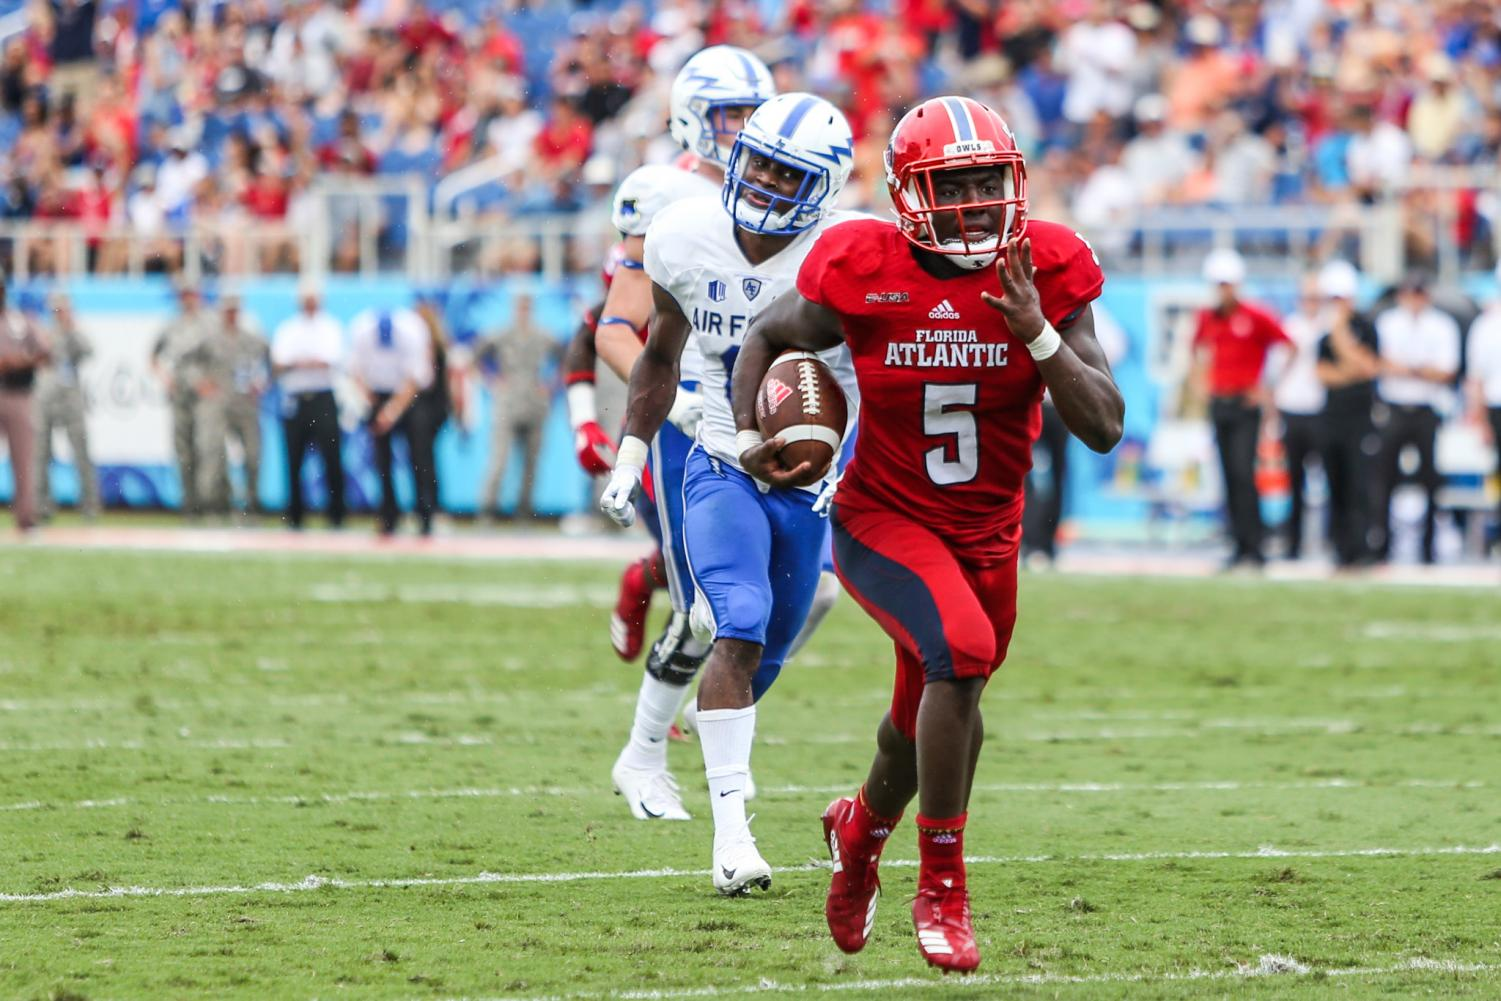 FAU junior running back Devin Singletary (5) runs down field with two defense Air Force players attempting to catch up to score a touchdown for FAU football. Photo by: Alexander Rodriguez